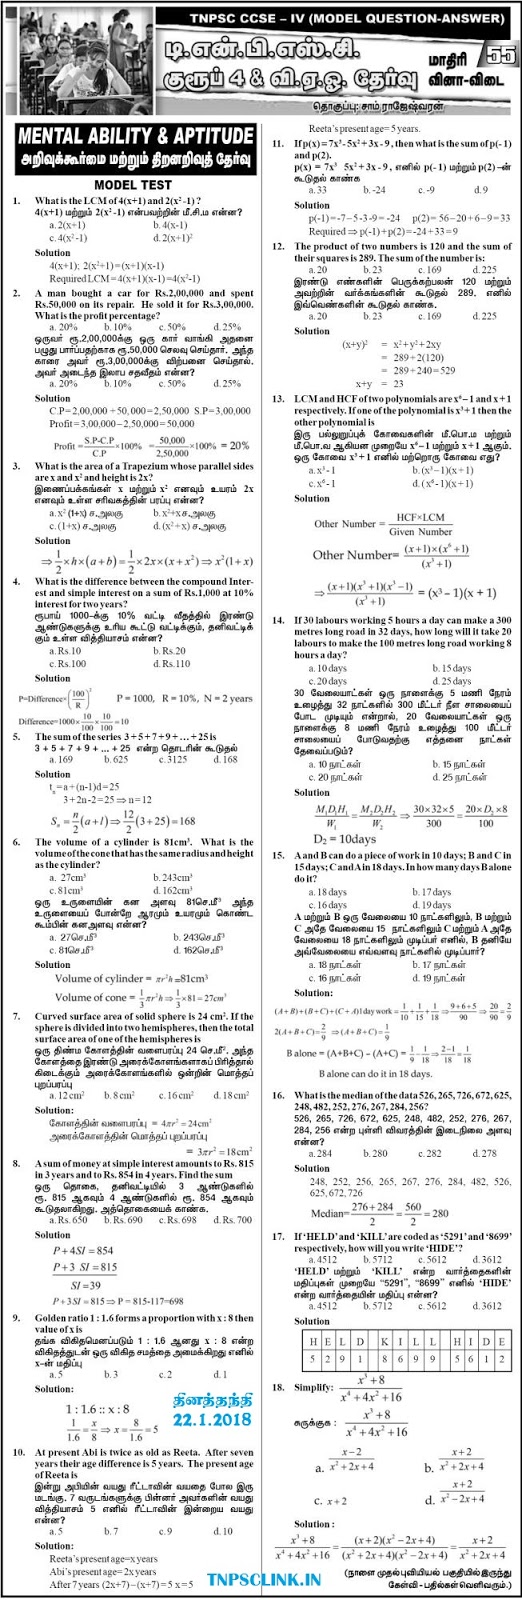 TNPSC Group 4 Maths Aptitude Dinathanthi Jan 22, 2018, Download as PDF